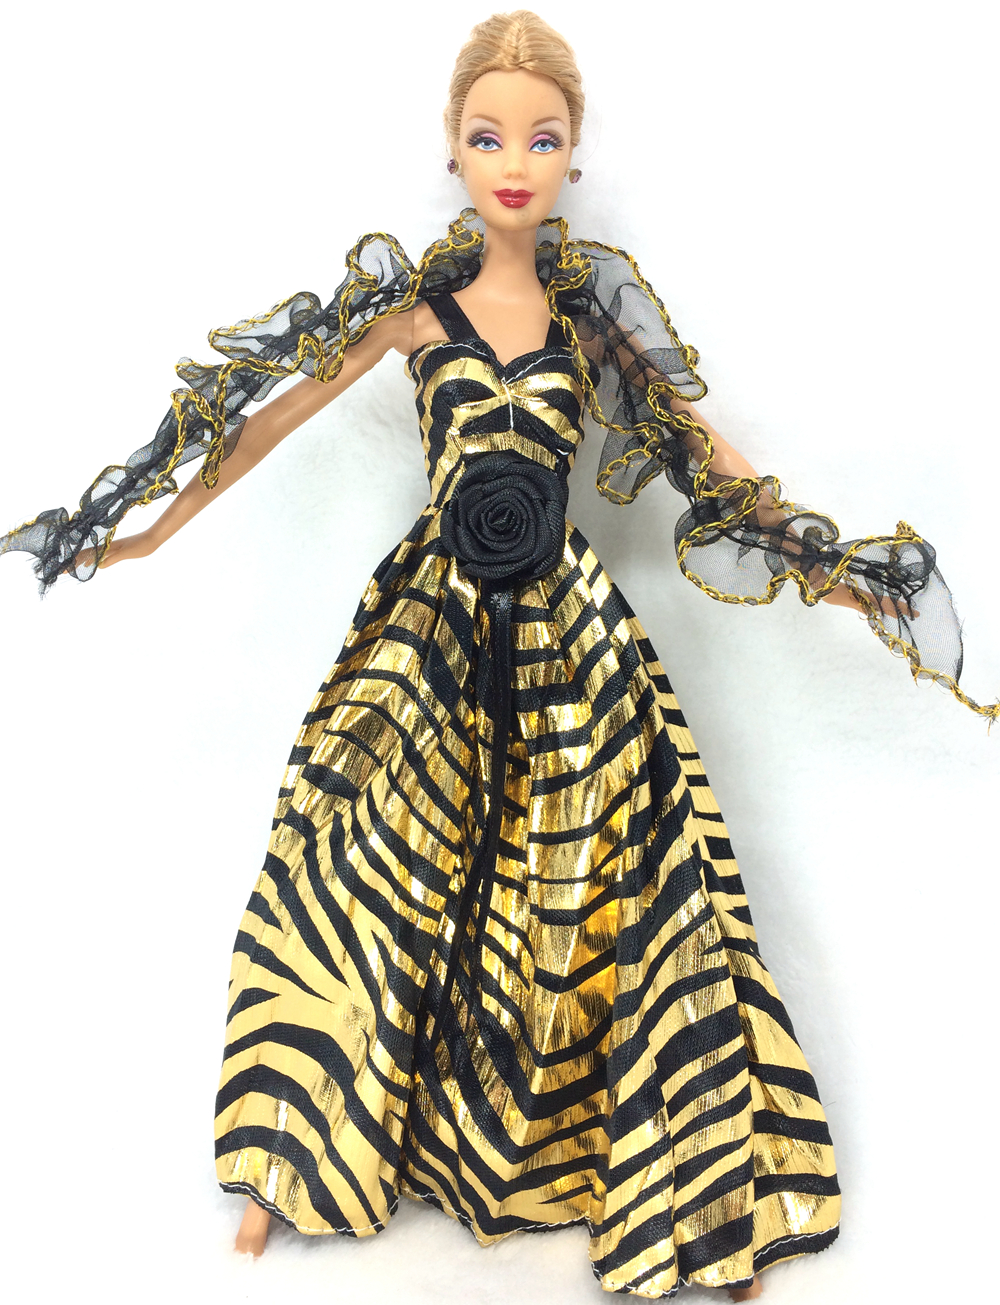 NK Newest Princess Golden Dress Lace Tippet Noble Party Gown For Barbie Doll Fashion Design Outfit Best Gift For Girl Doll 029B